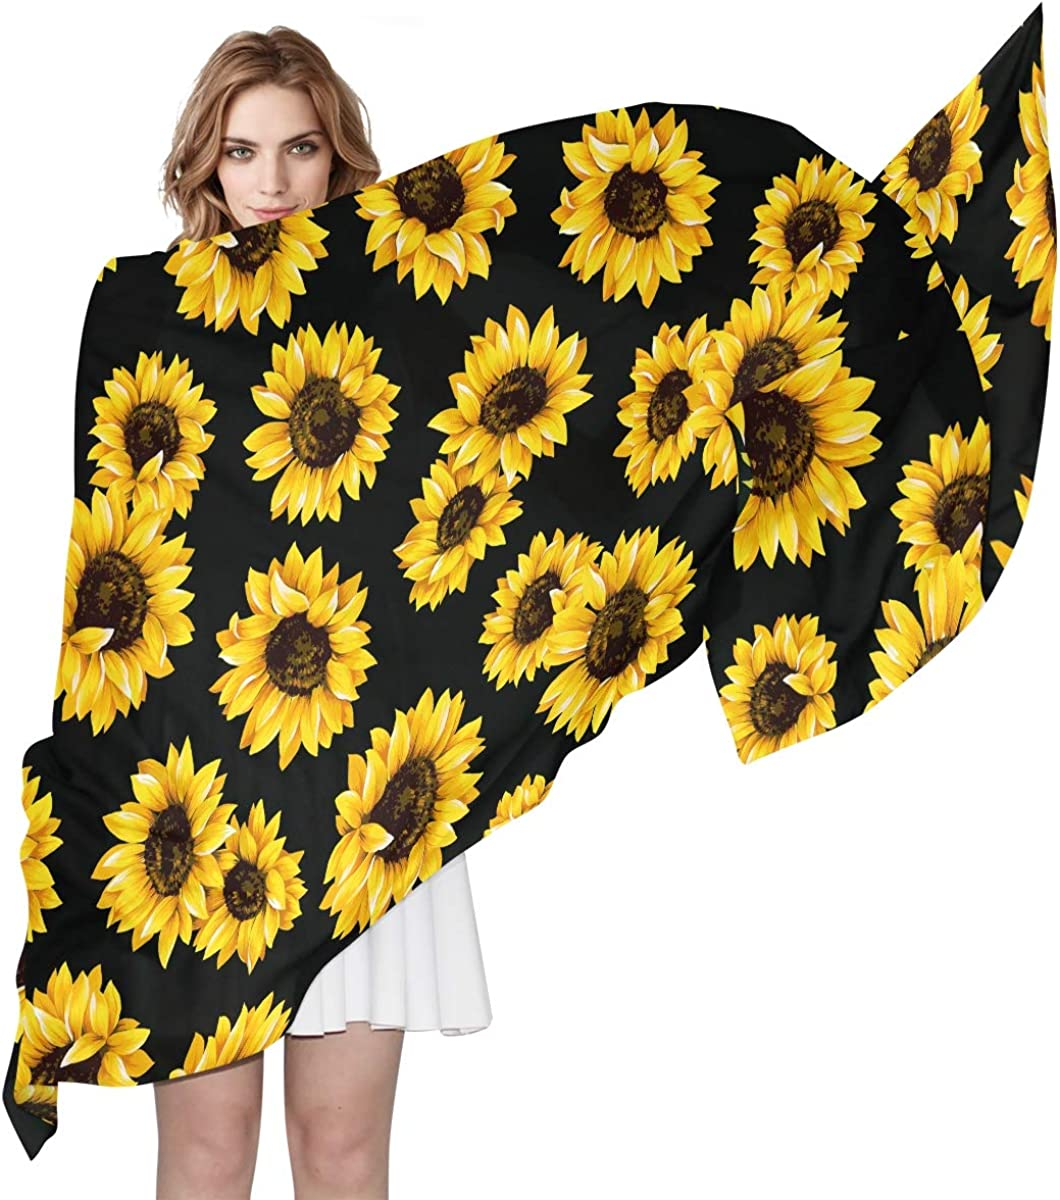 ALAZA Long Silk Like Scarf for Women Sunflower Print Floral Balck Large Head Wrap Stole